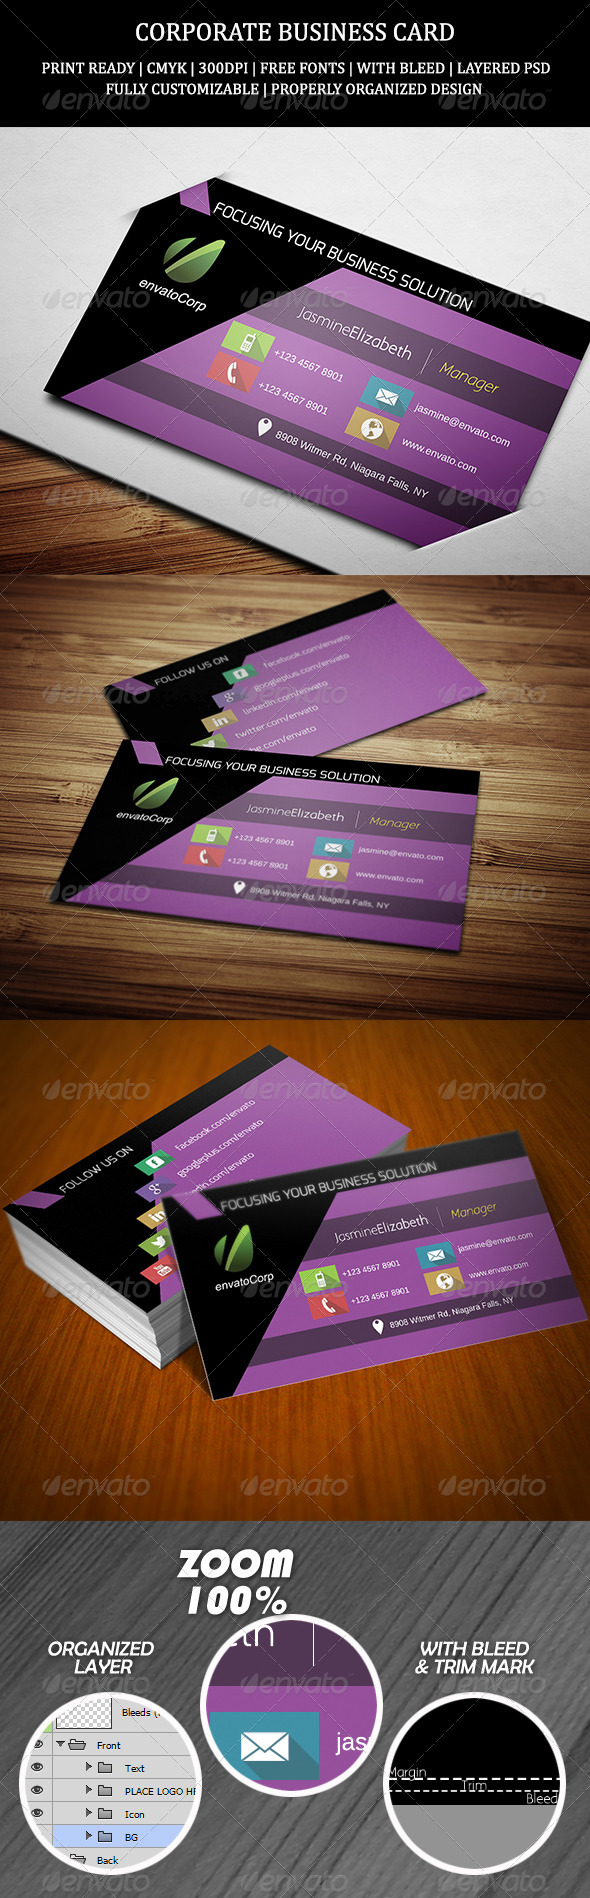 GraphicRiver Corporate Business Card 11 6763097